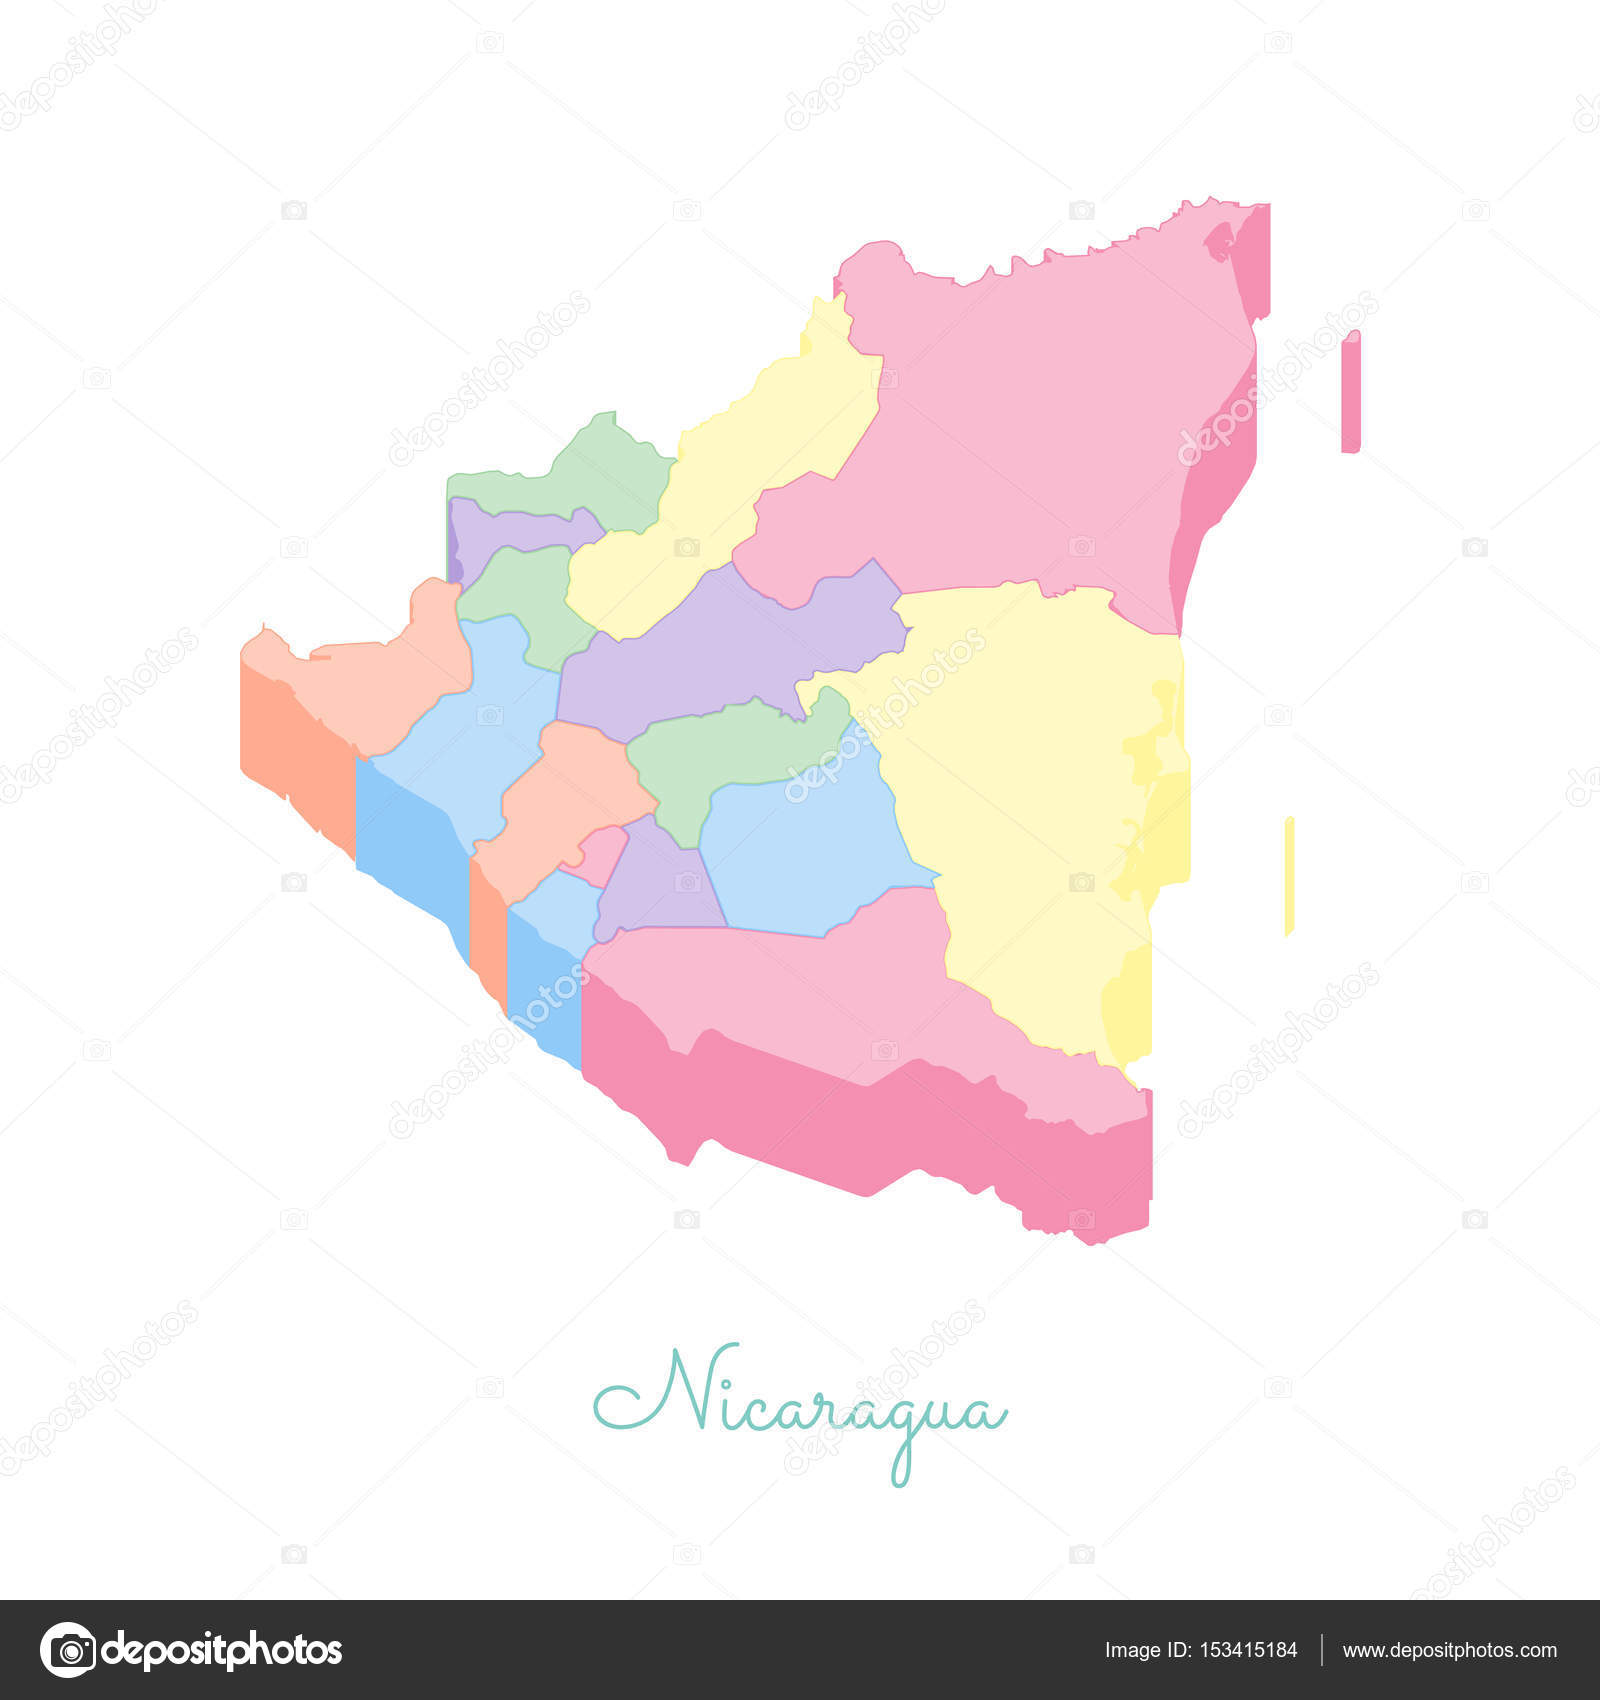 Nicaragua Region Map Colorful Isometric Top View Detailed Map Of - Nicaragua map download